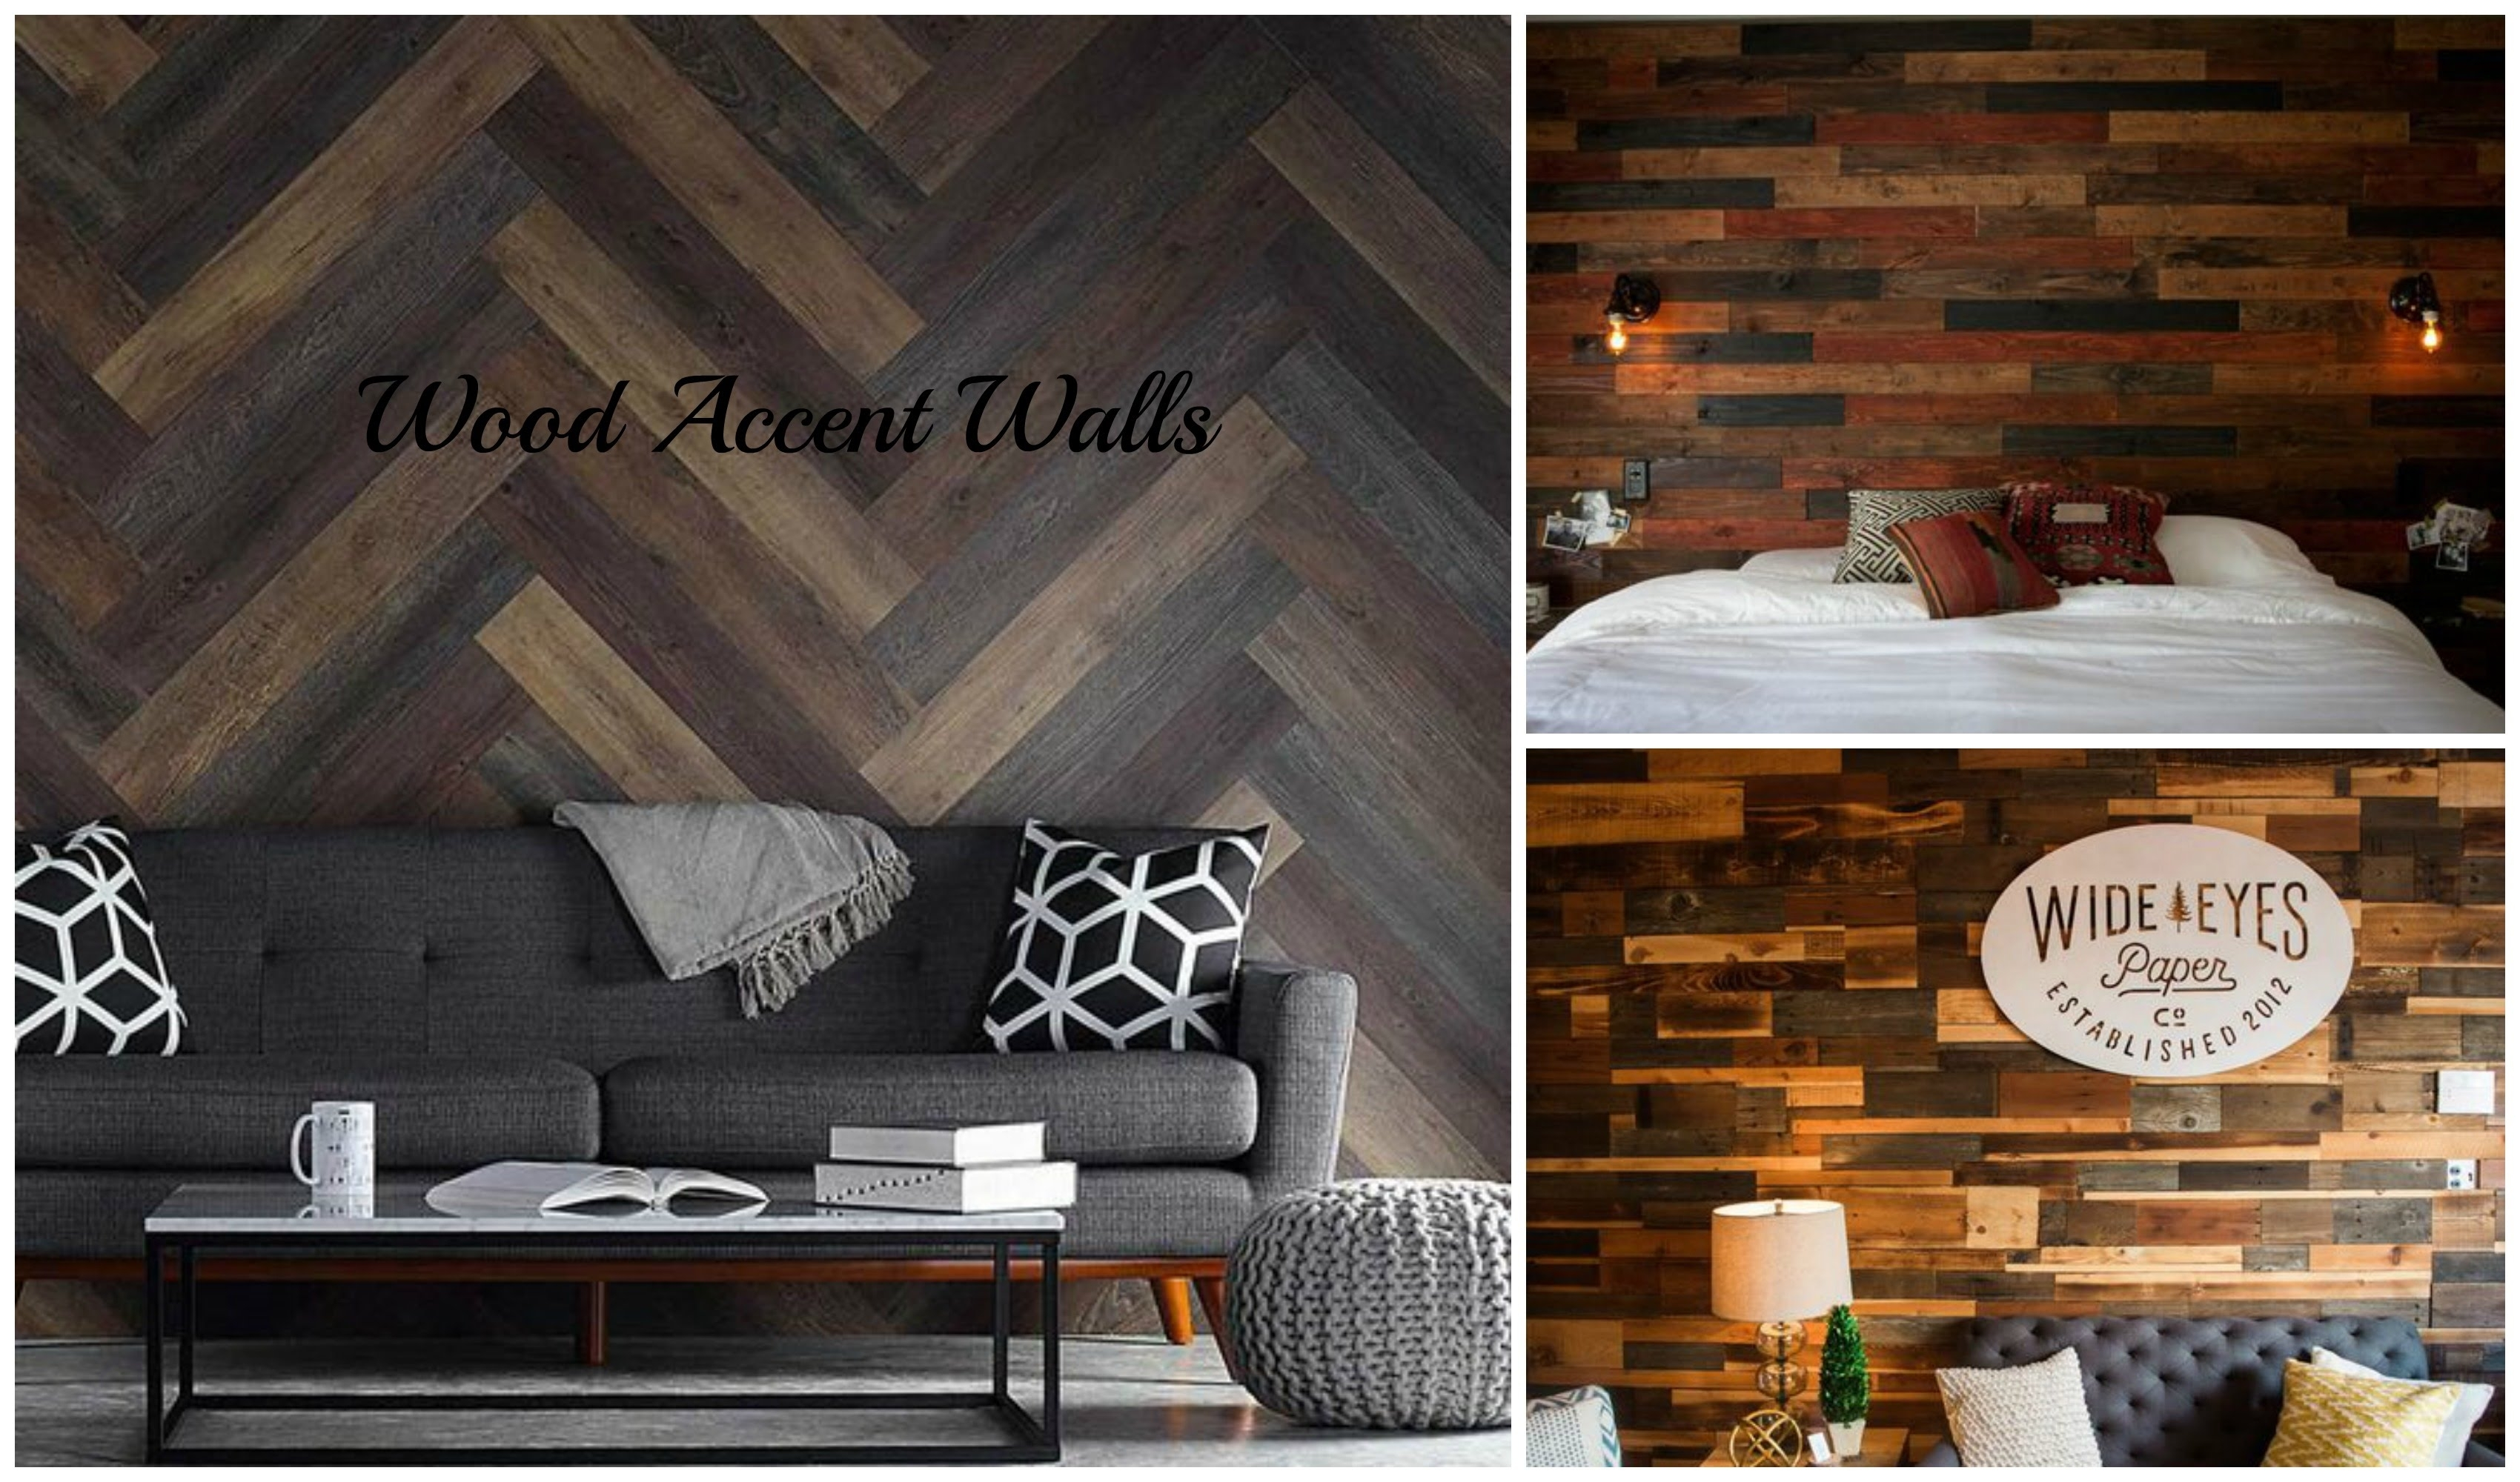 Pallet Accent Wall – Design Decoration Within Most Up To Date Wall Accents With Pallets (View 10 of 15)